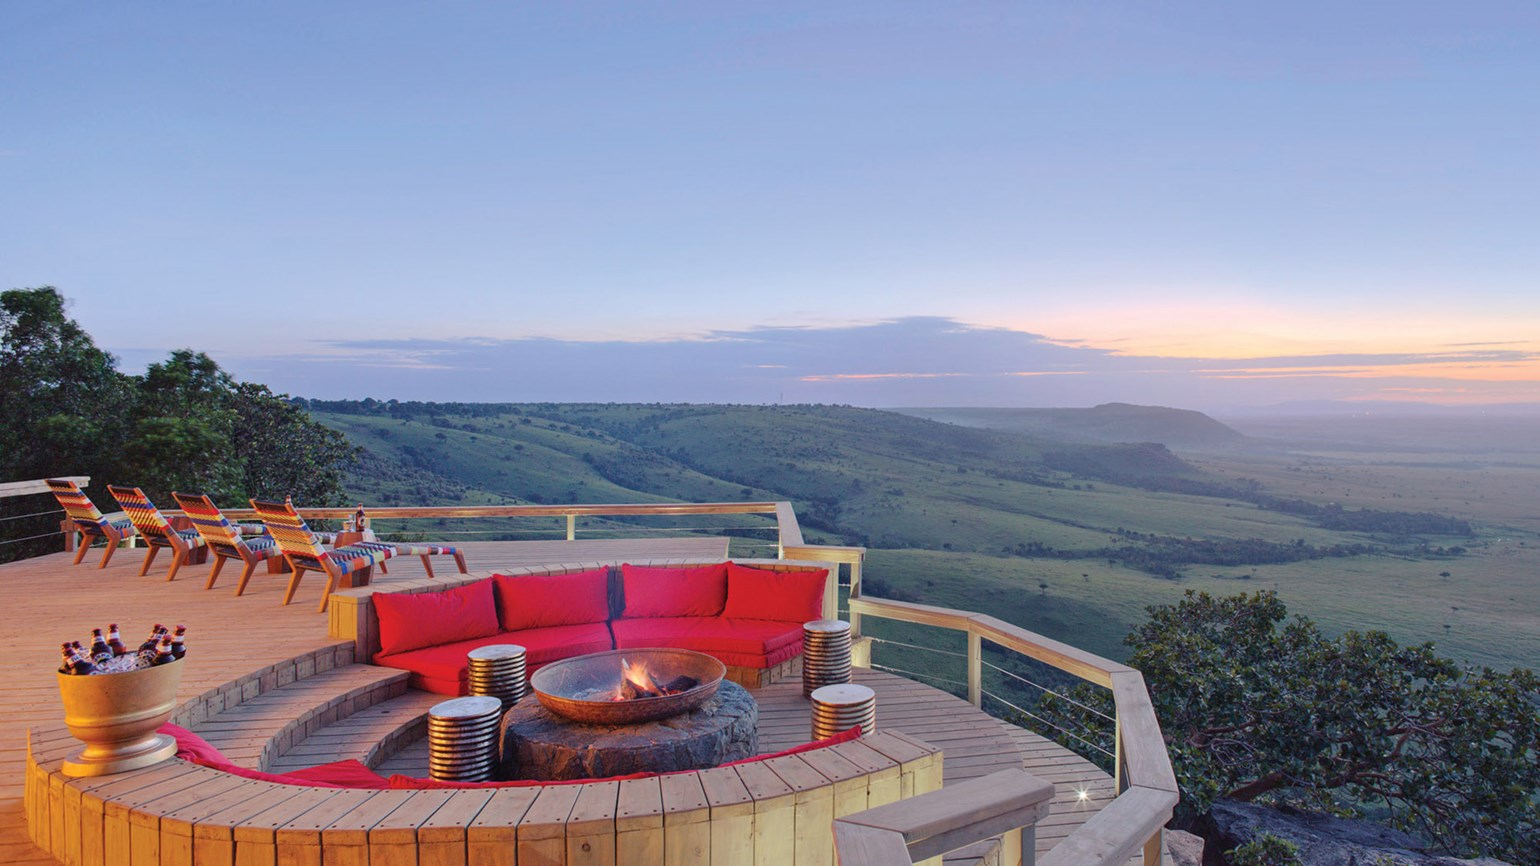 Kenya safari lodges, from rustic to refined